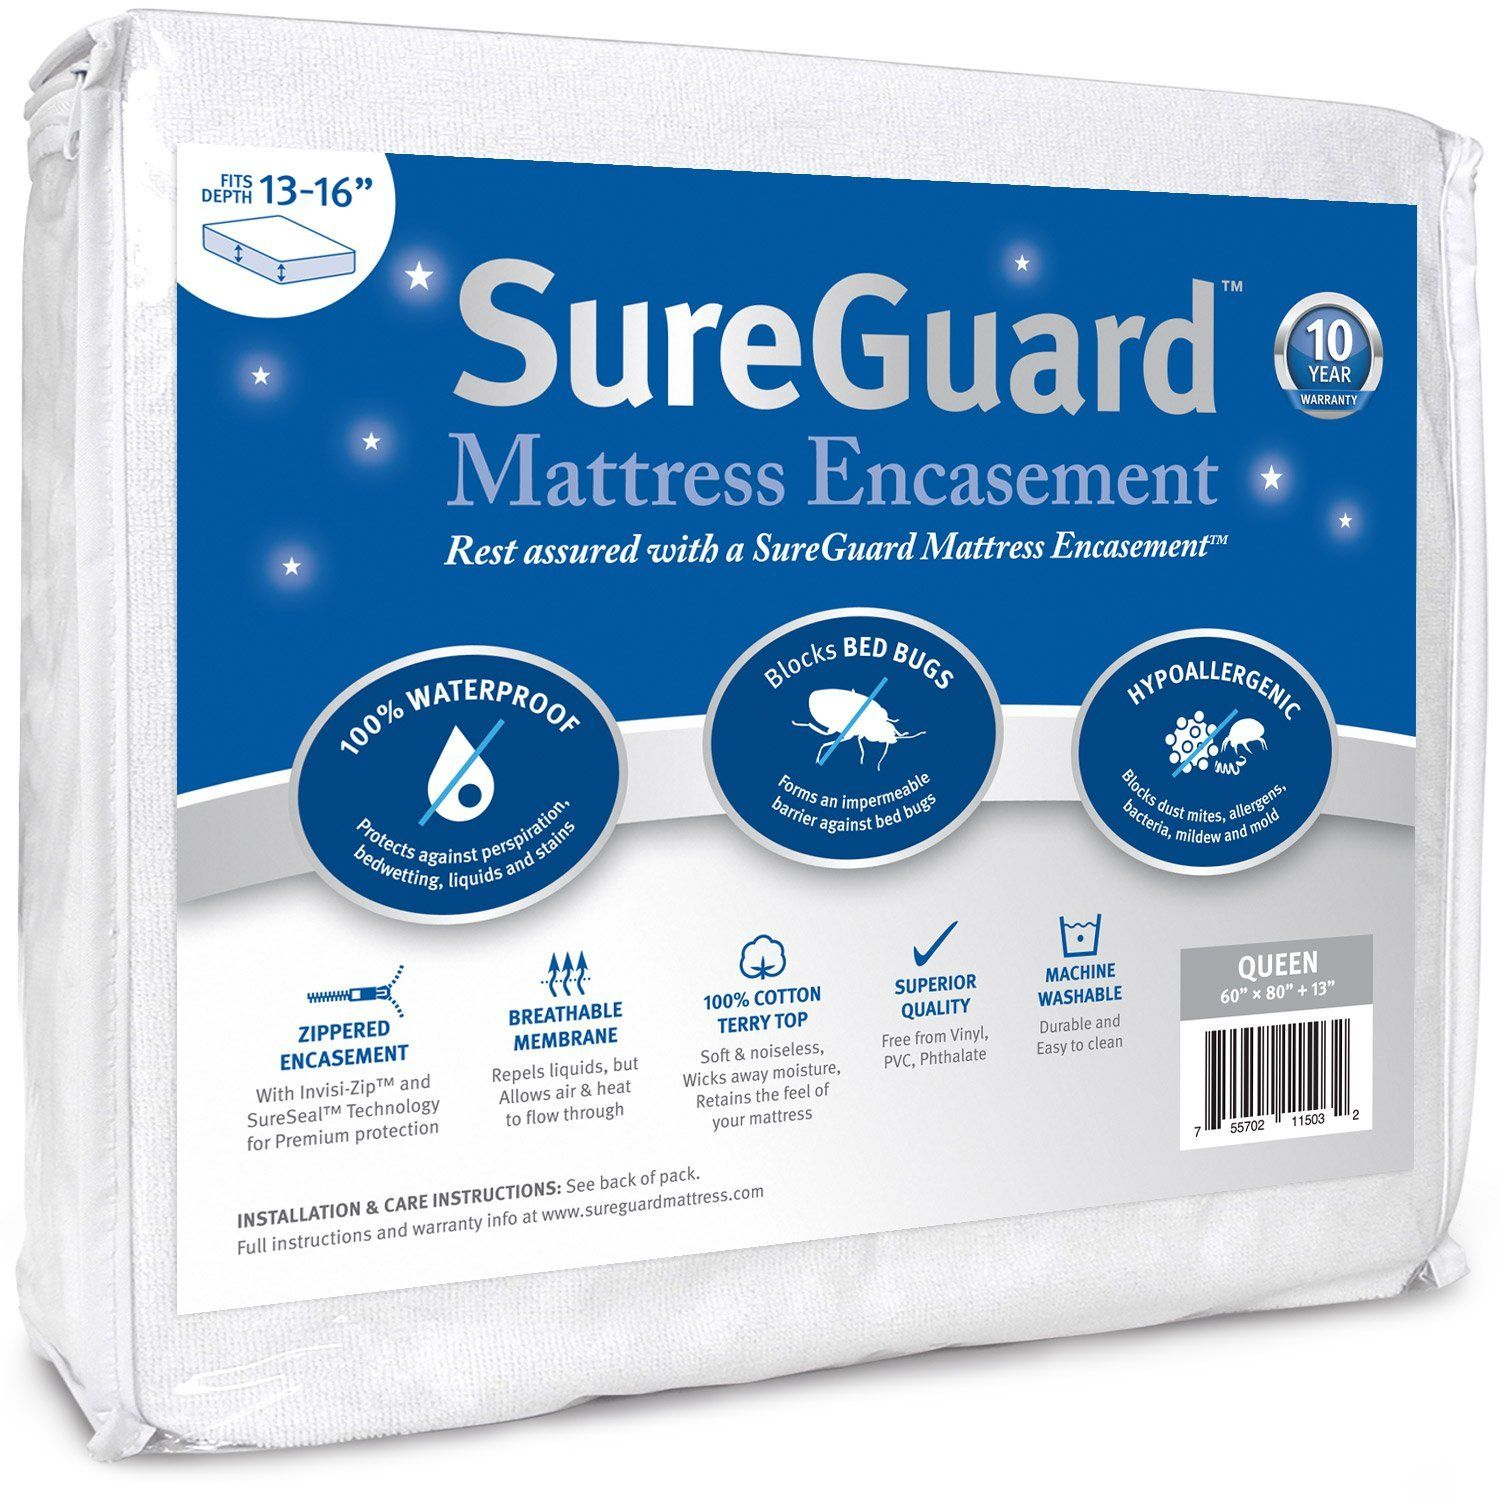 Set of 2 Queen MALOUF Sleep Tite Encase OMNIPHASE Bed Bug Proof Waterproof Temperature Regulating Pillow Protector